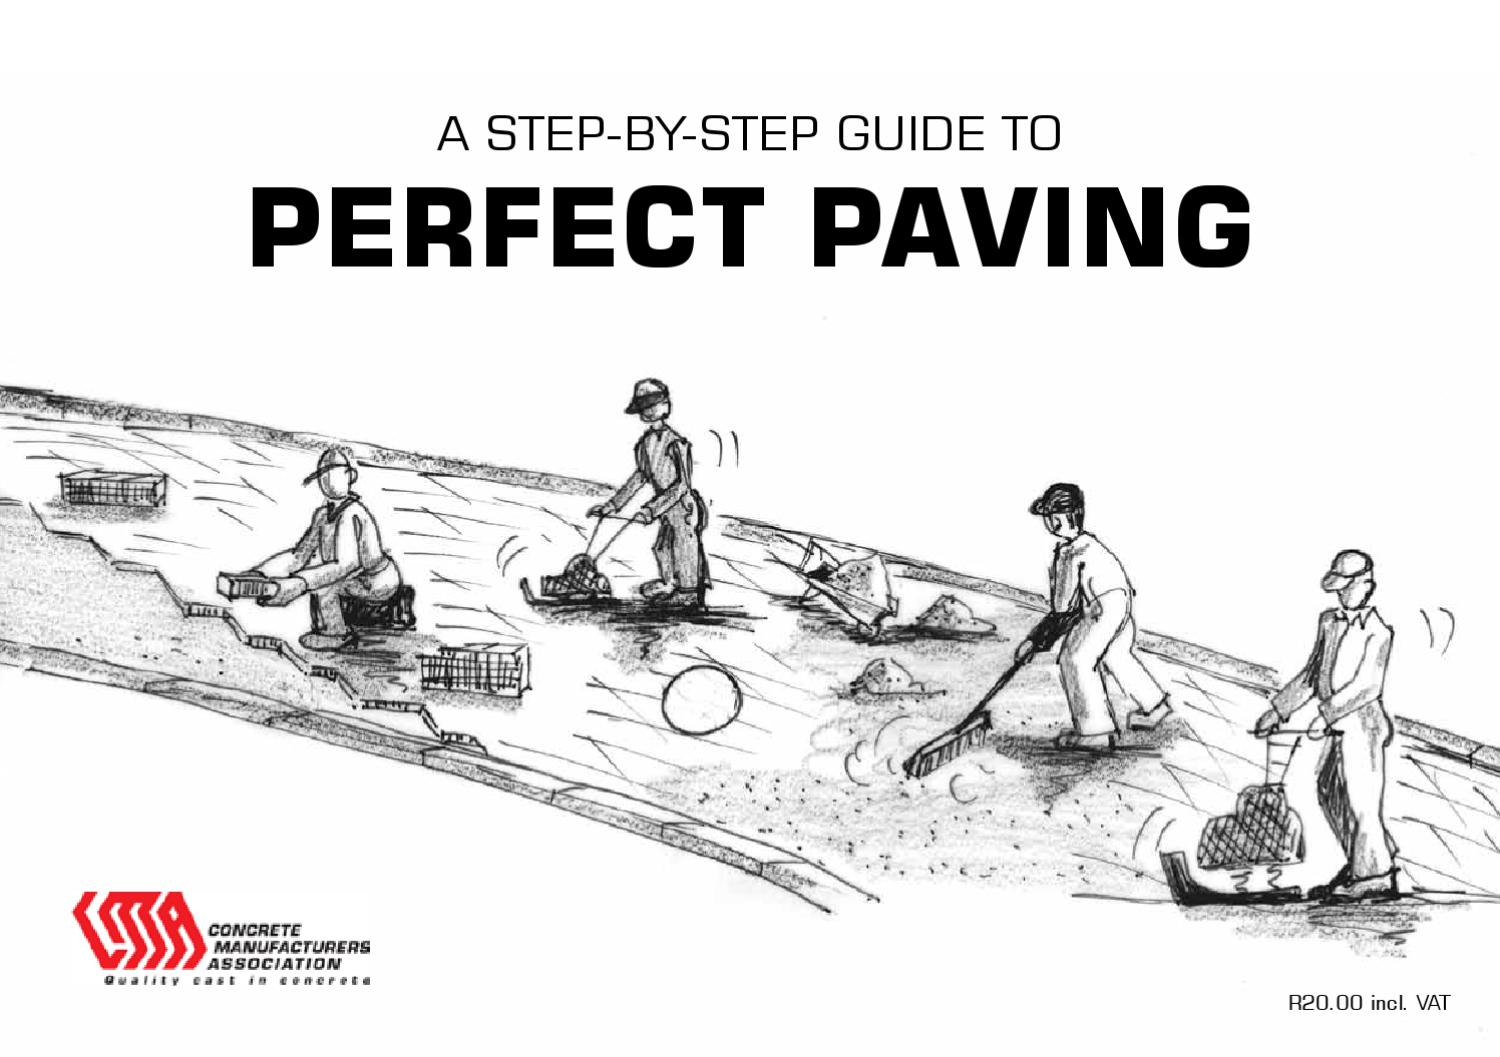 Step by Step Guide to Perfect Paving by Concrete